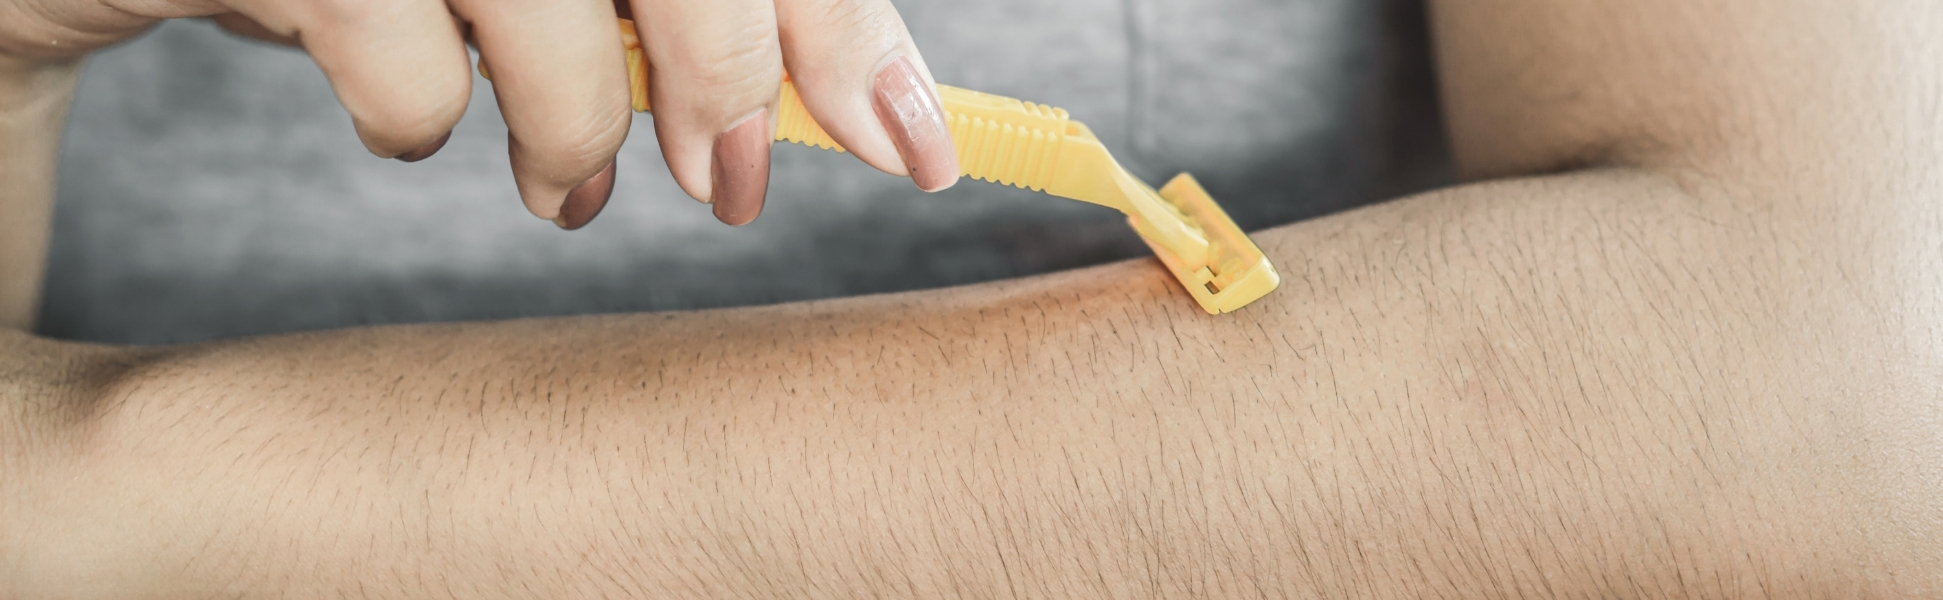 Causes of unwanted body hair